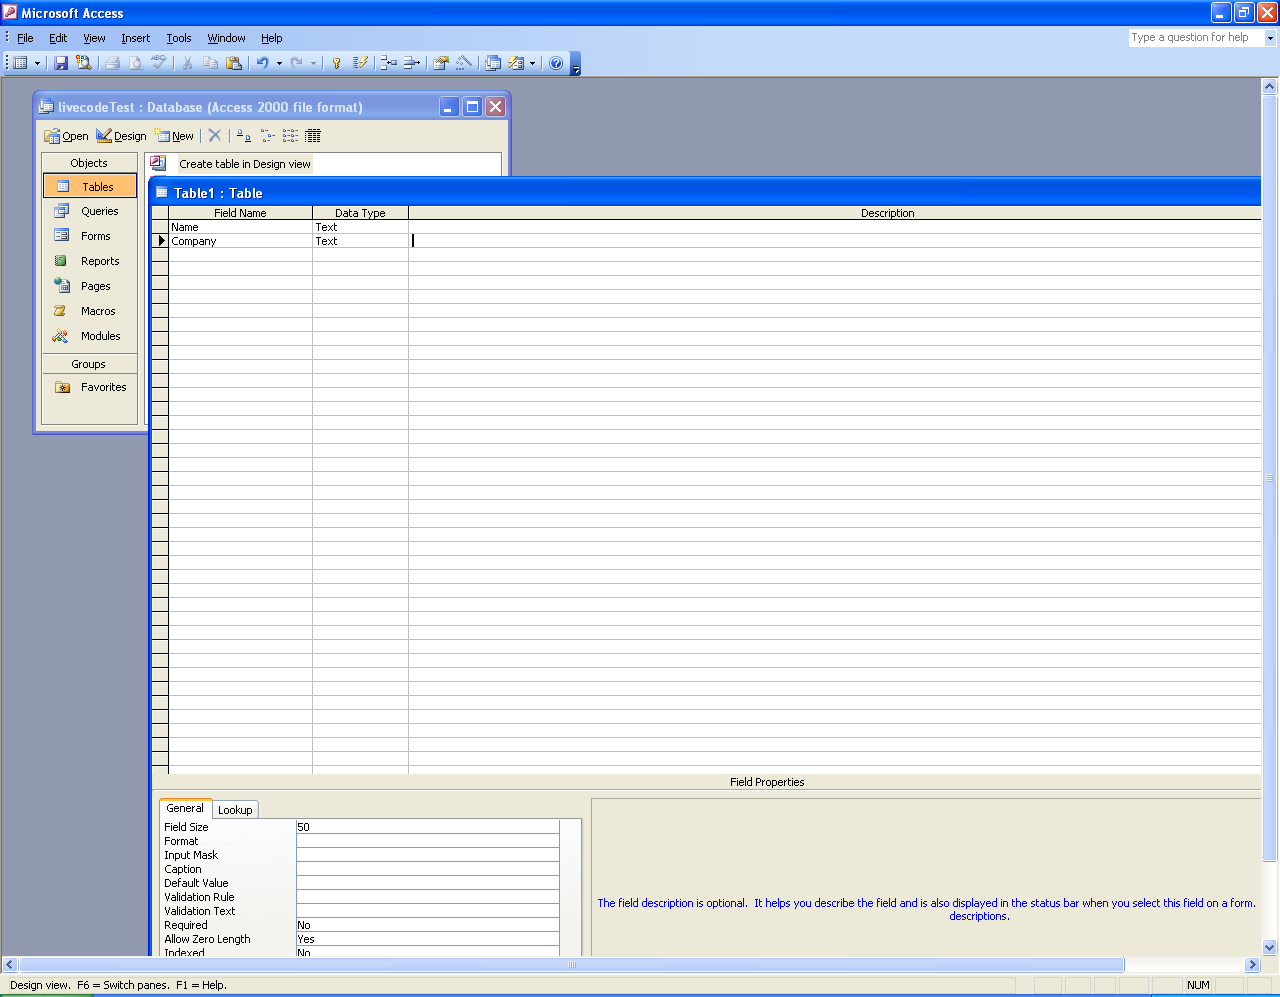 Creating a table in MS Access